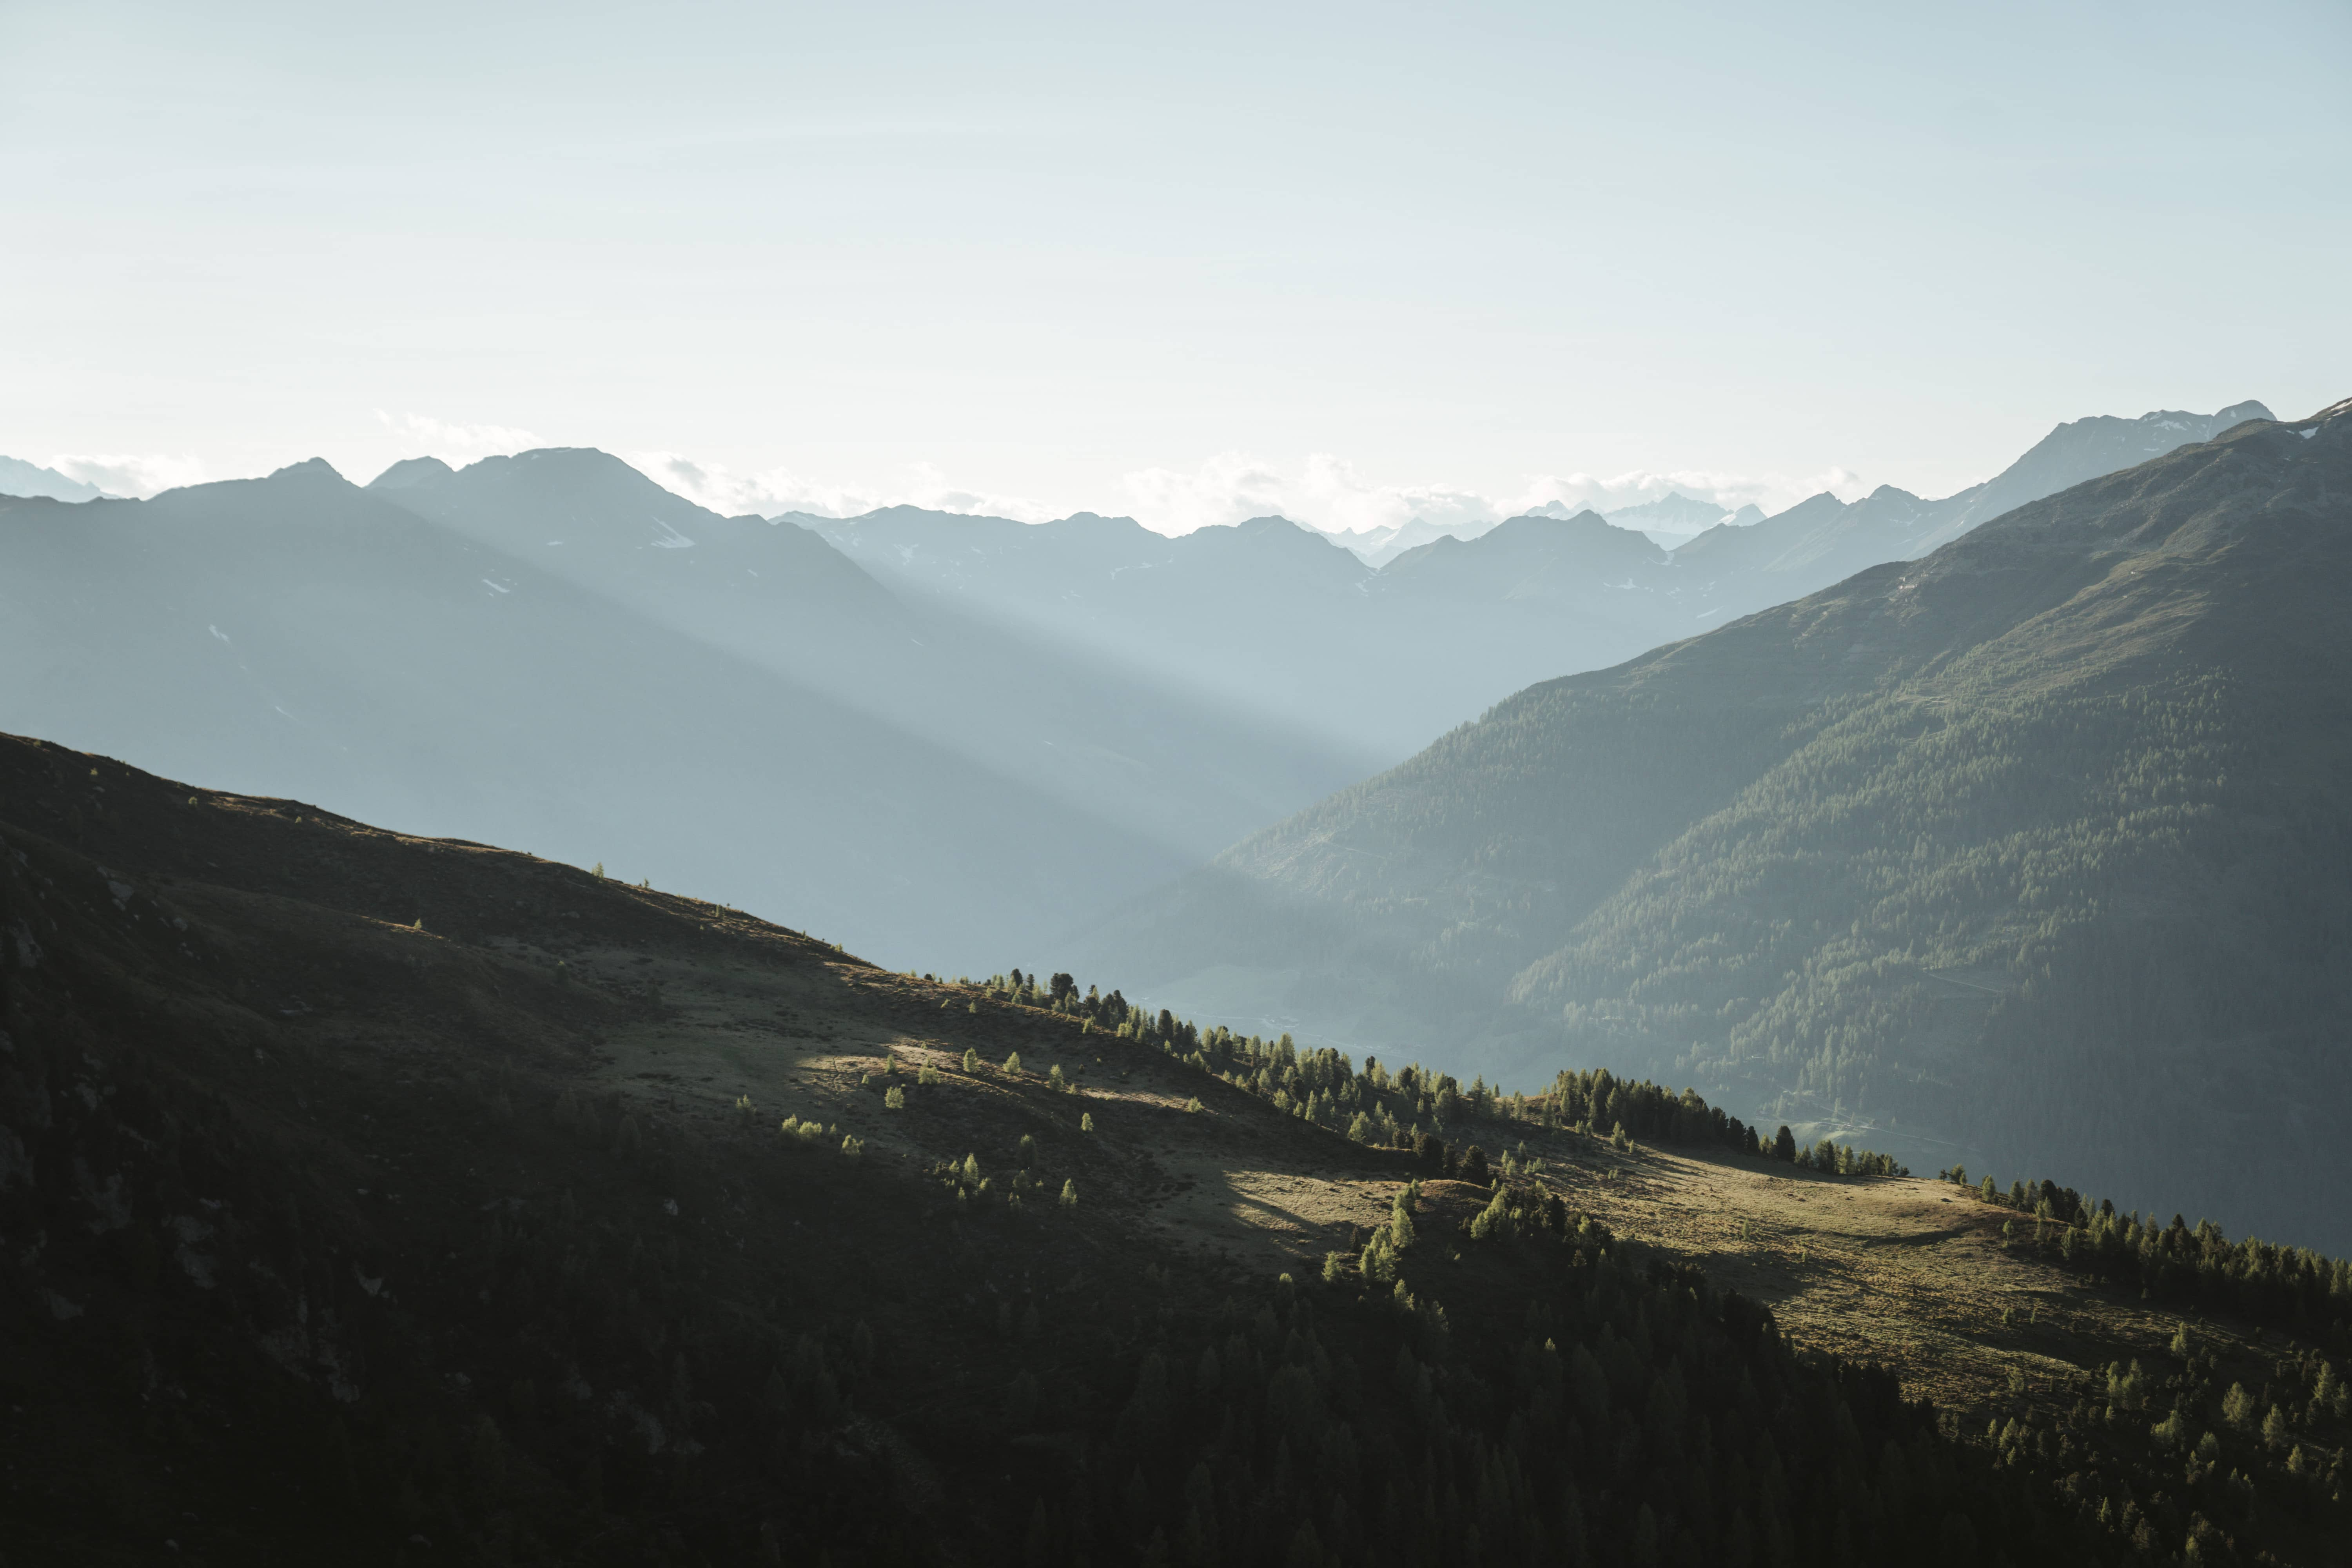 viewpoint off mountain peak Thurntaler in eastern Tyrol in Austria while the sun is setting